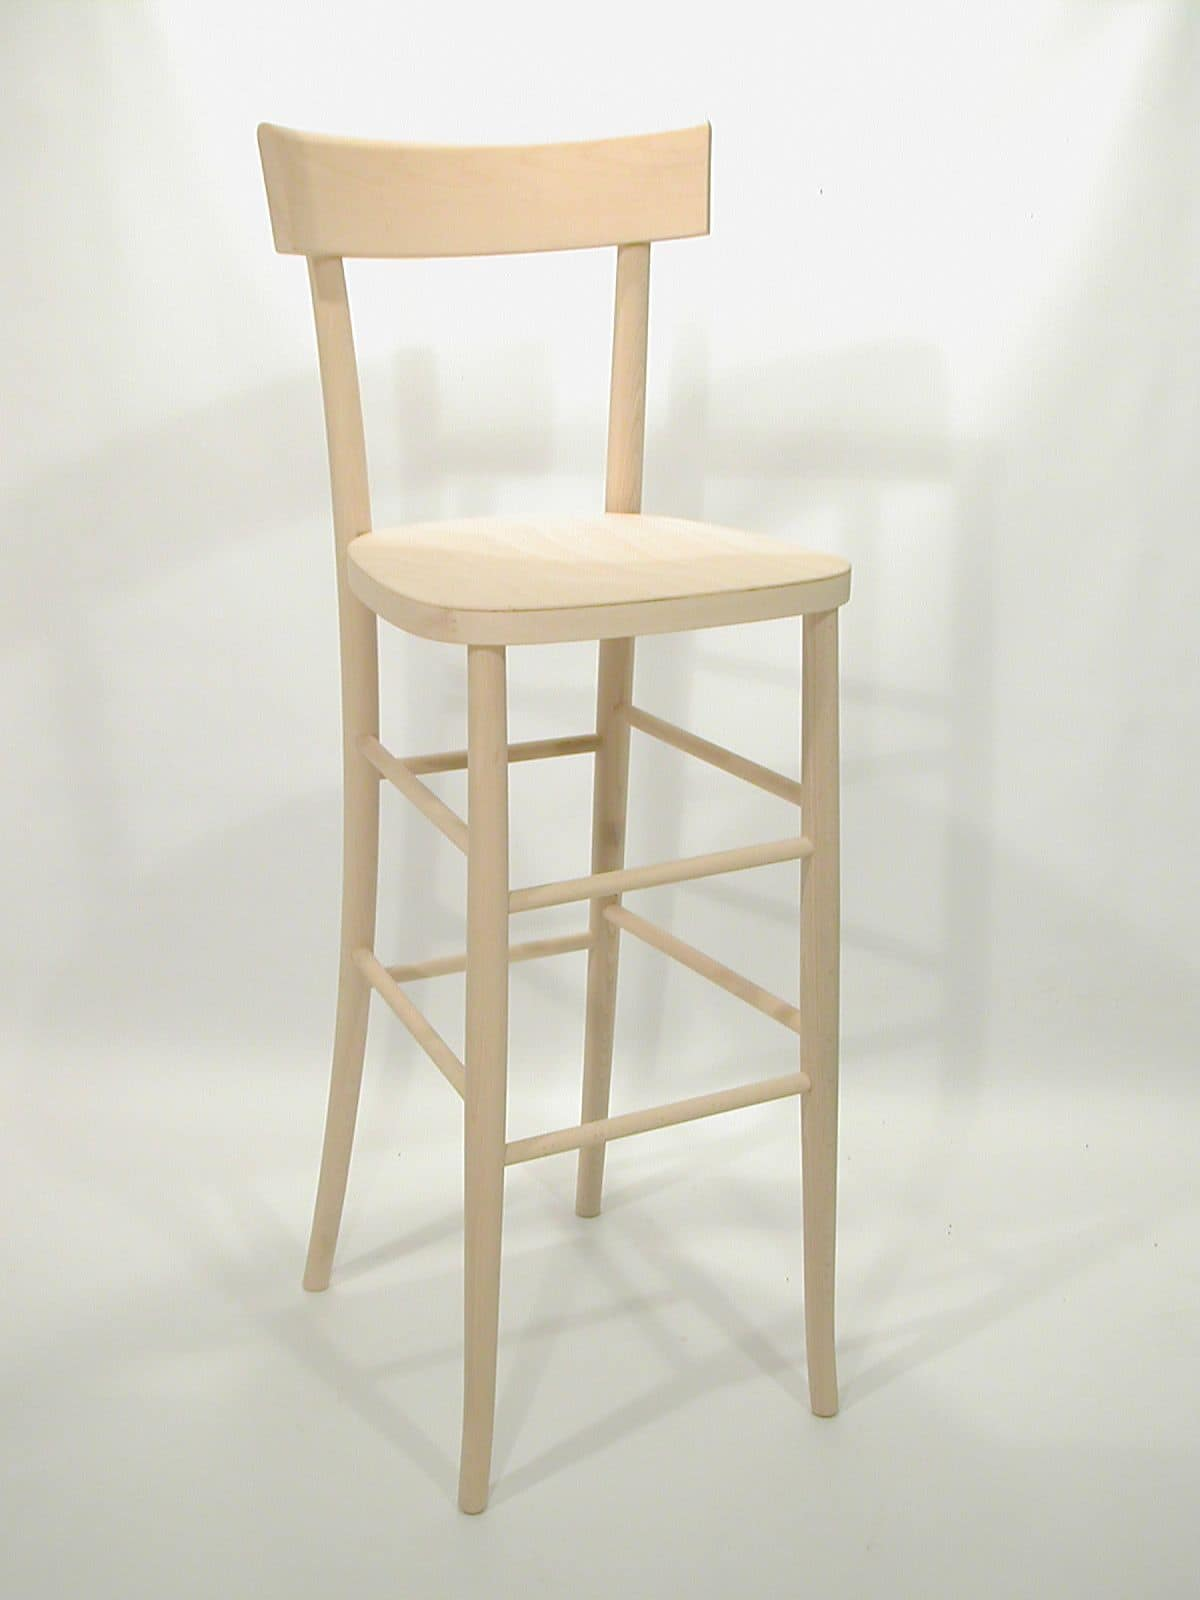 Milano barstool, Beech stool for pubs, bars and restaurants